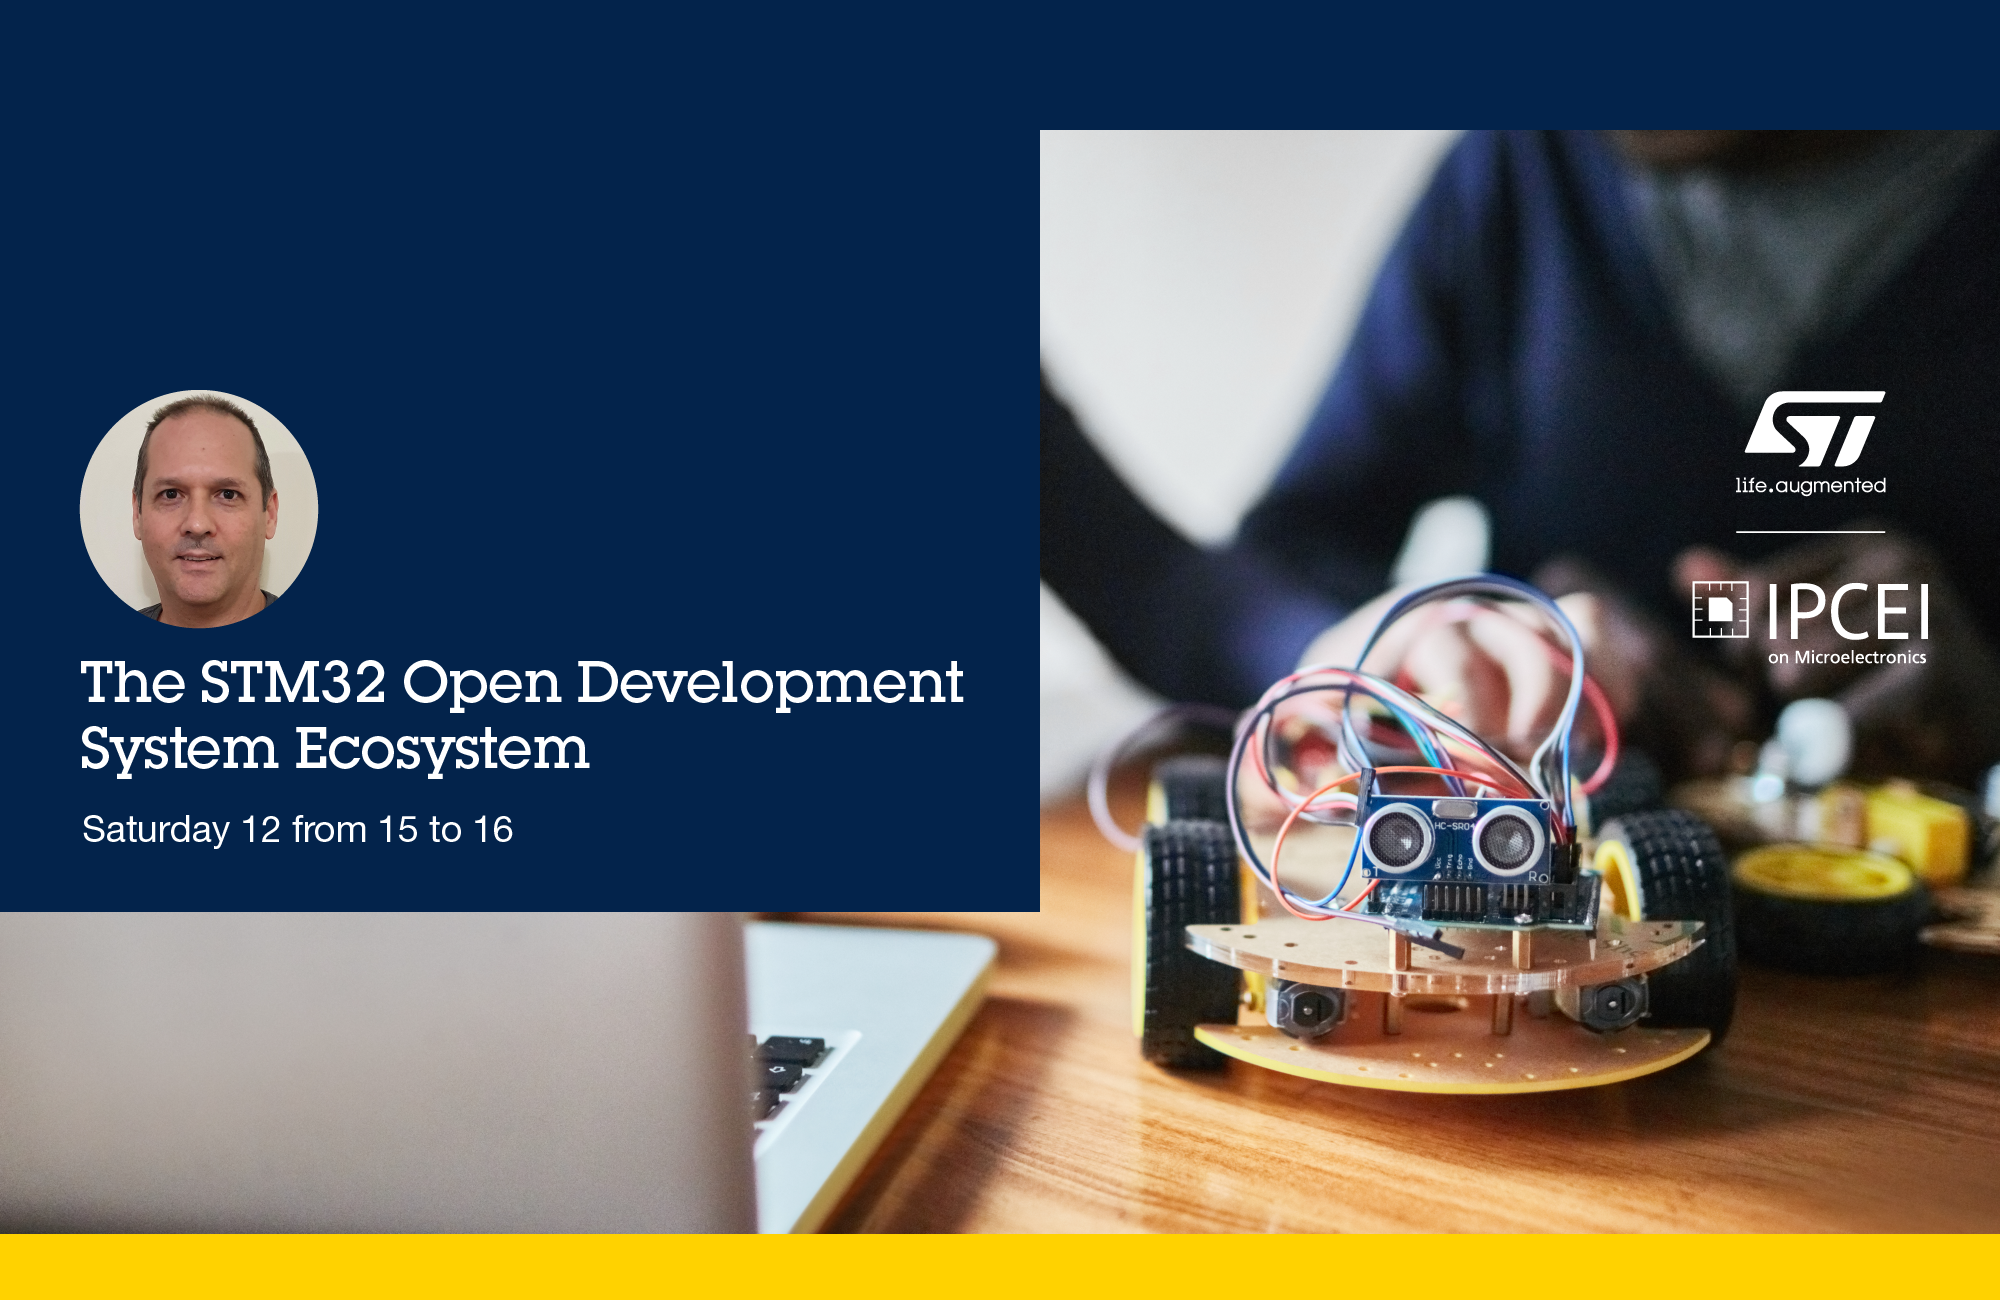 The STM32 Open Development Ecosystem